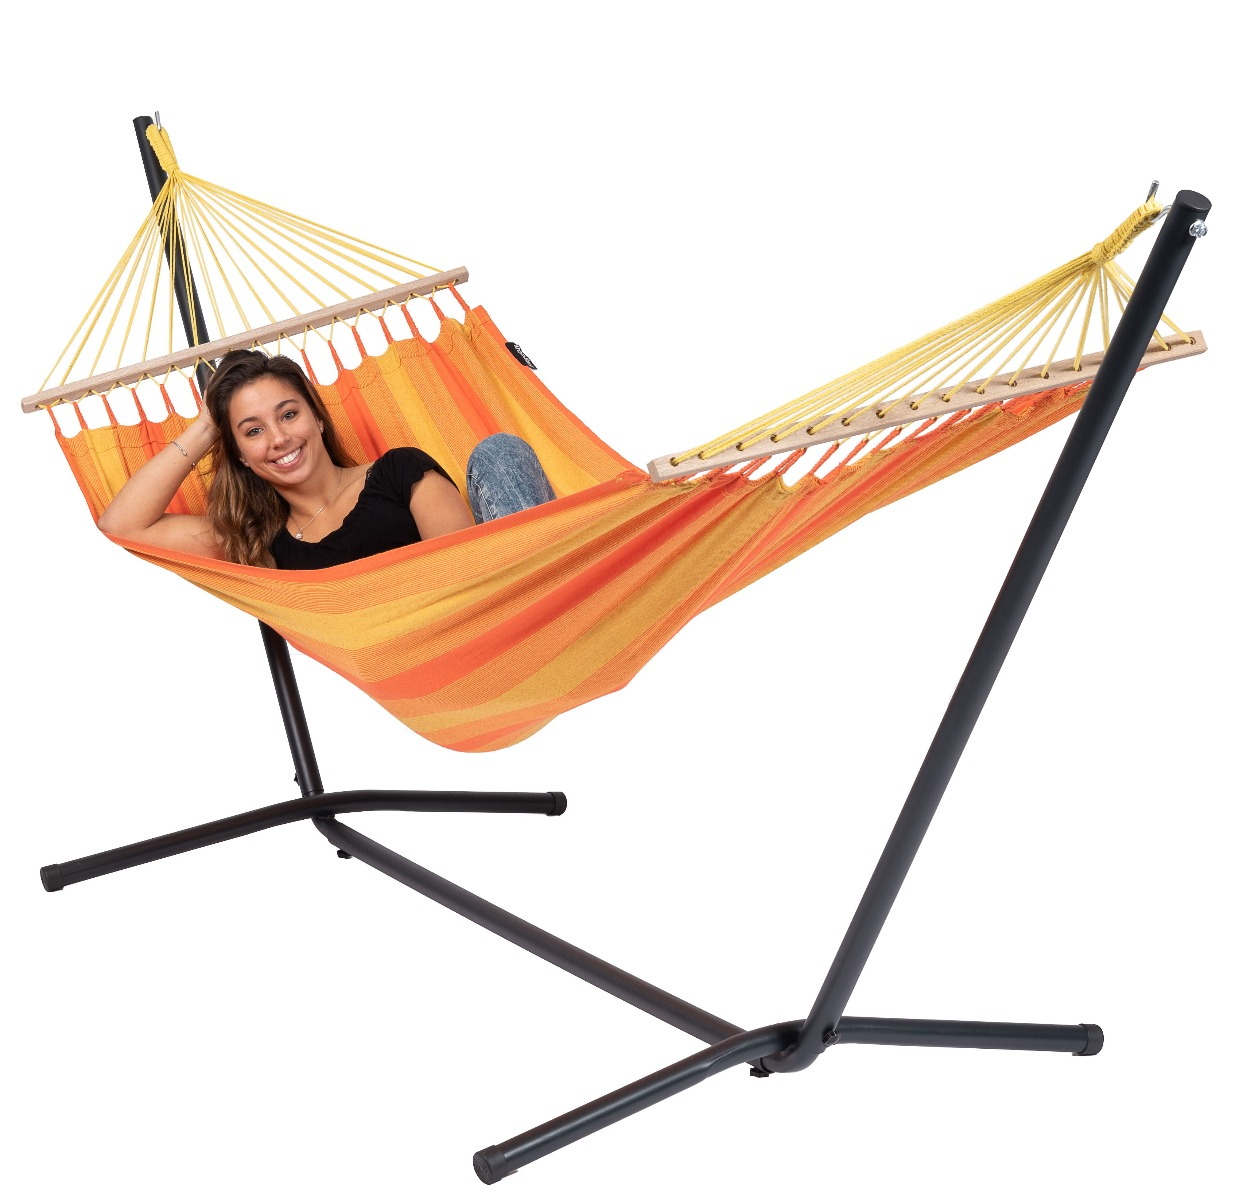 Hangmatset Single 'Easy & Relax' Orange - Tropilex �